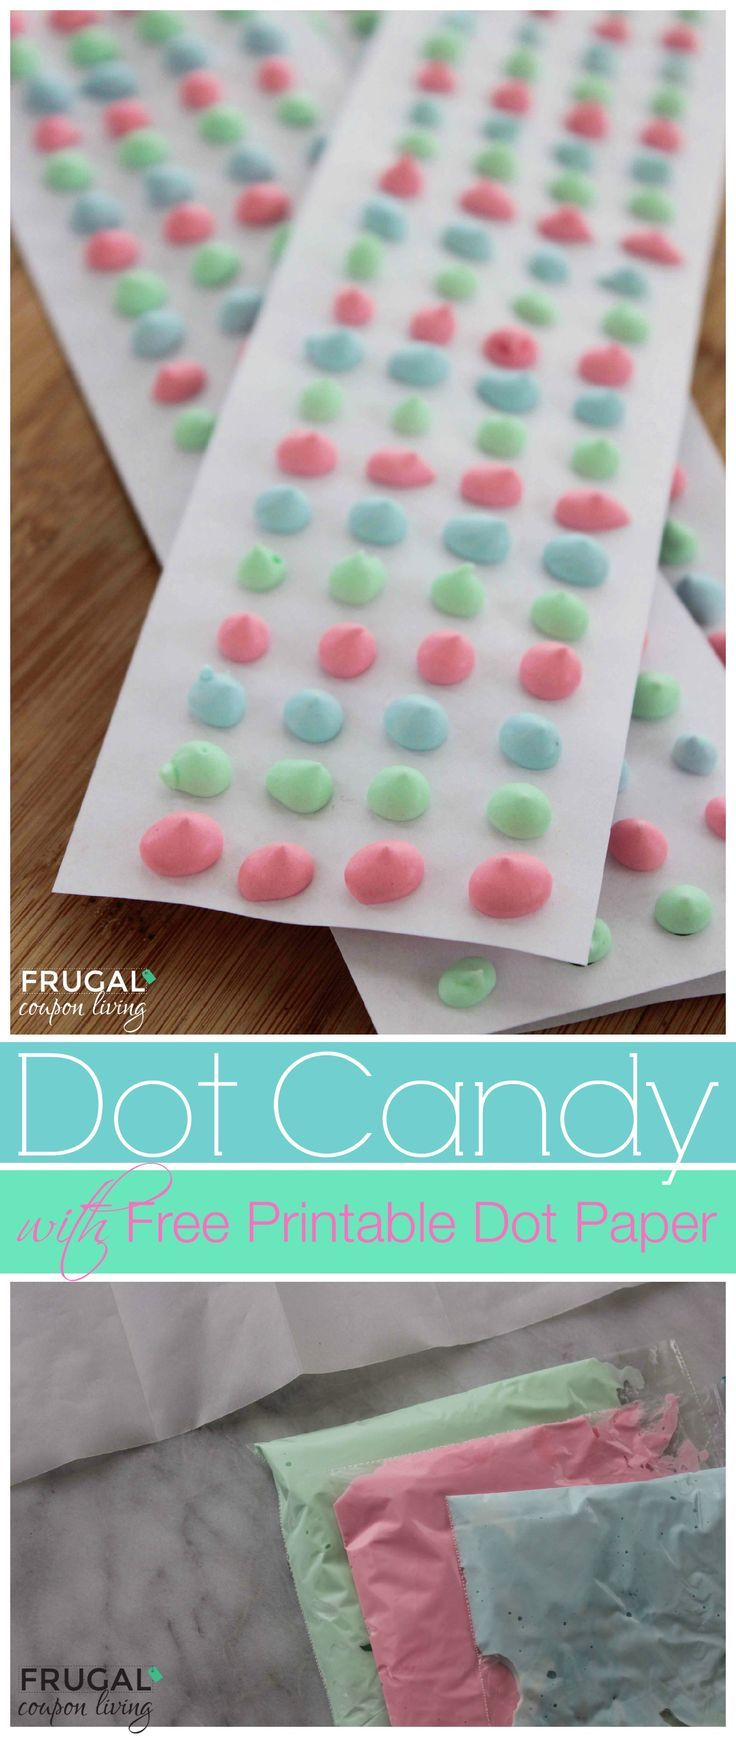 Candy Dot Tutorial and Recipe with FREE Dot Paper Template | Dots ...